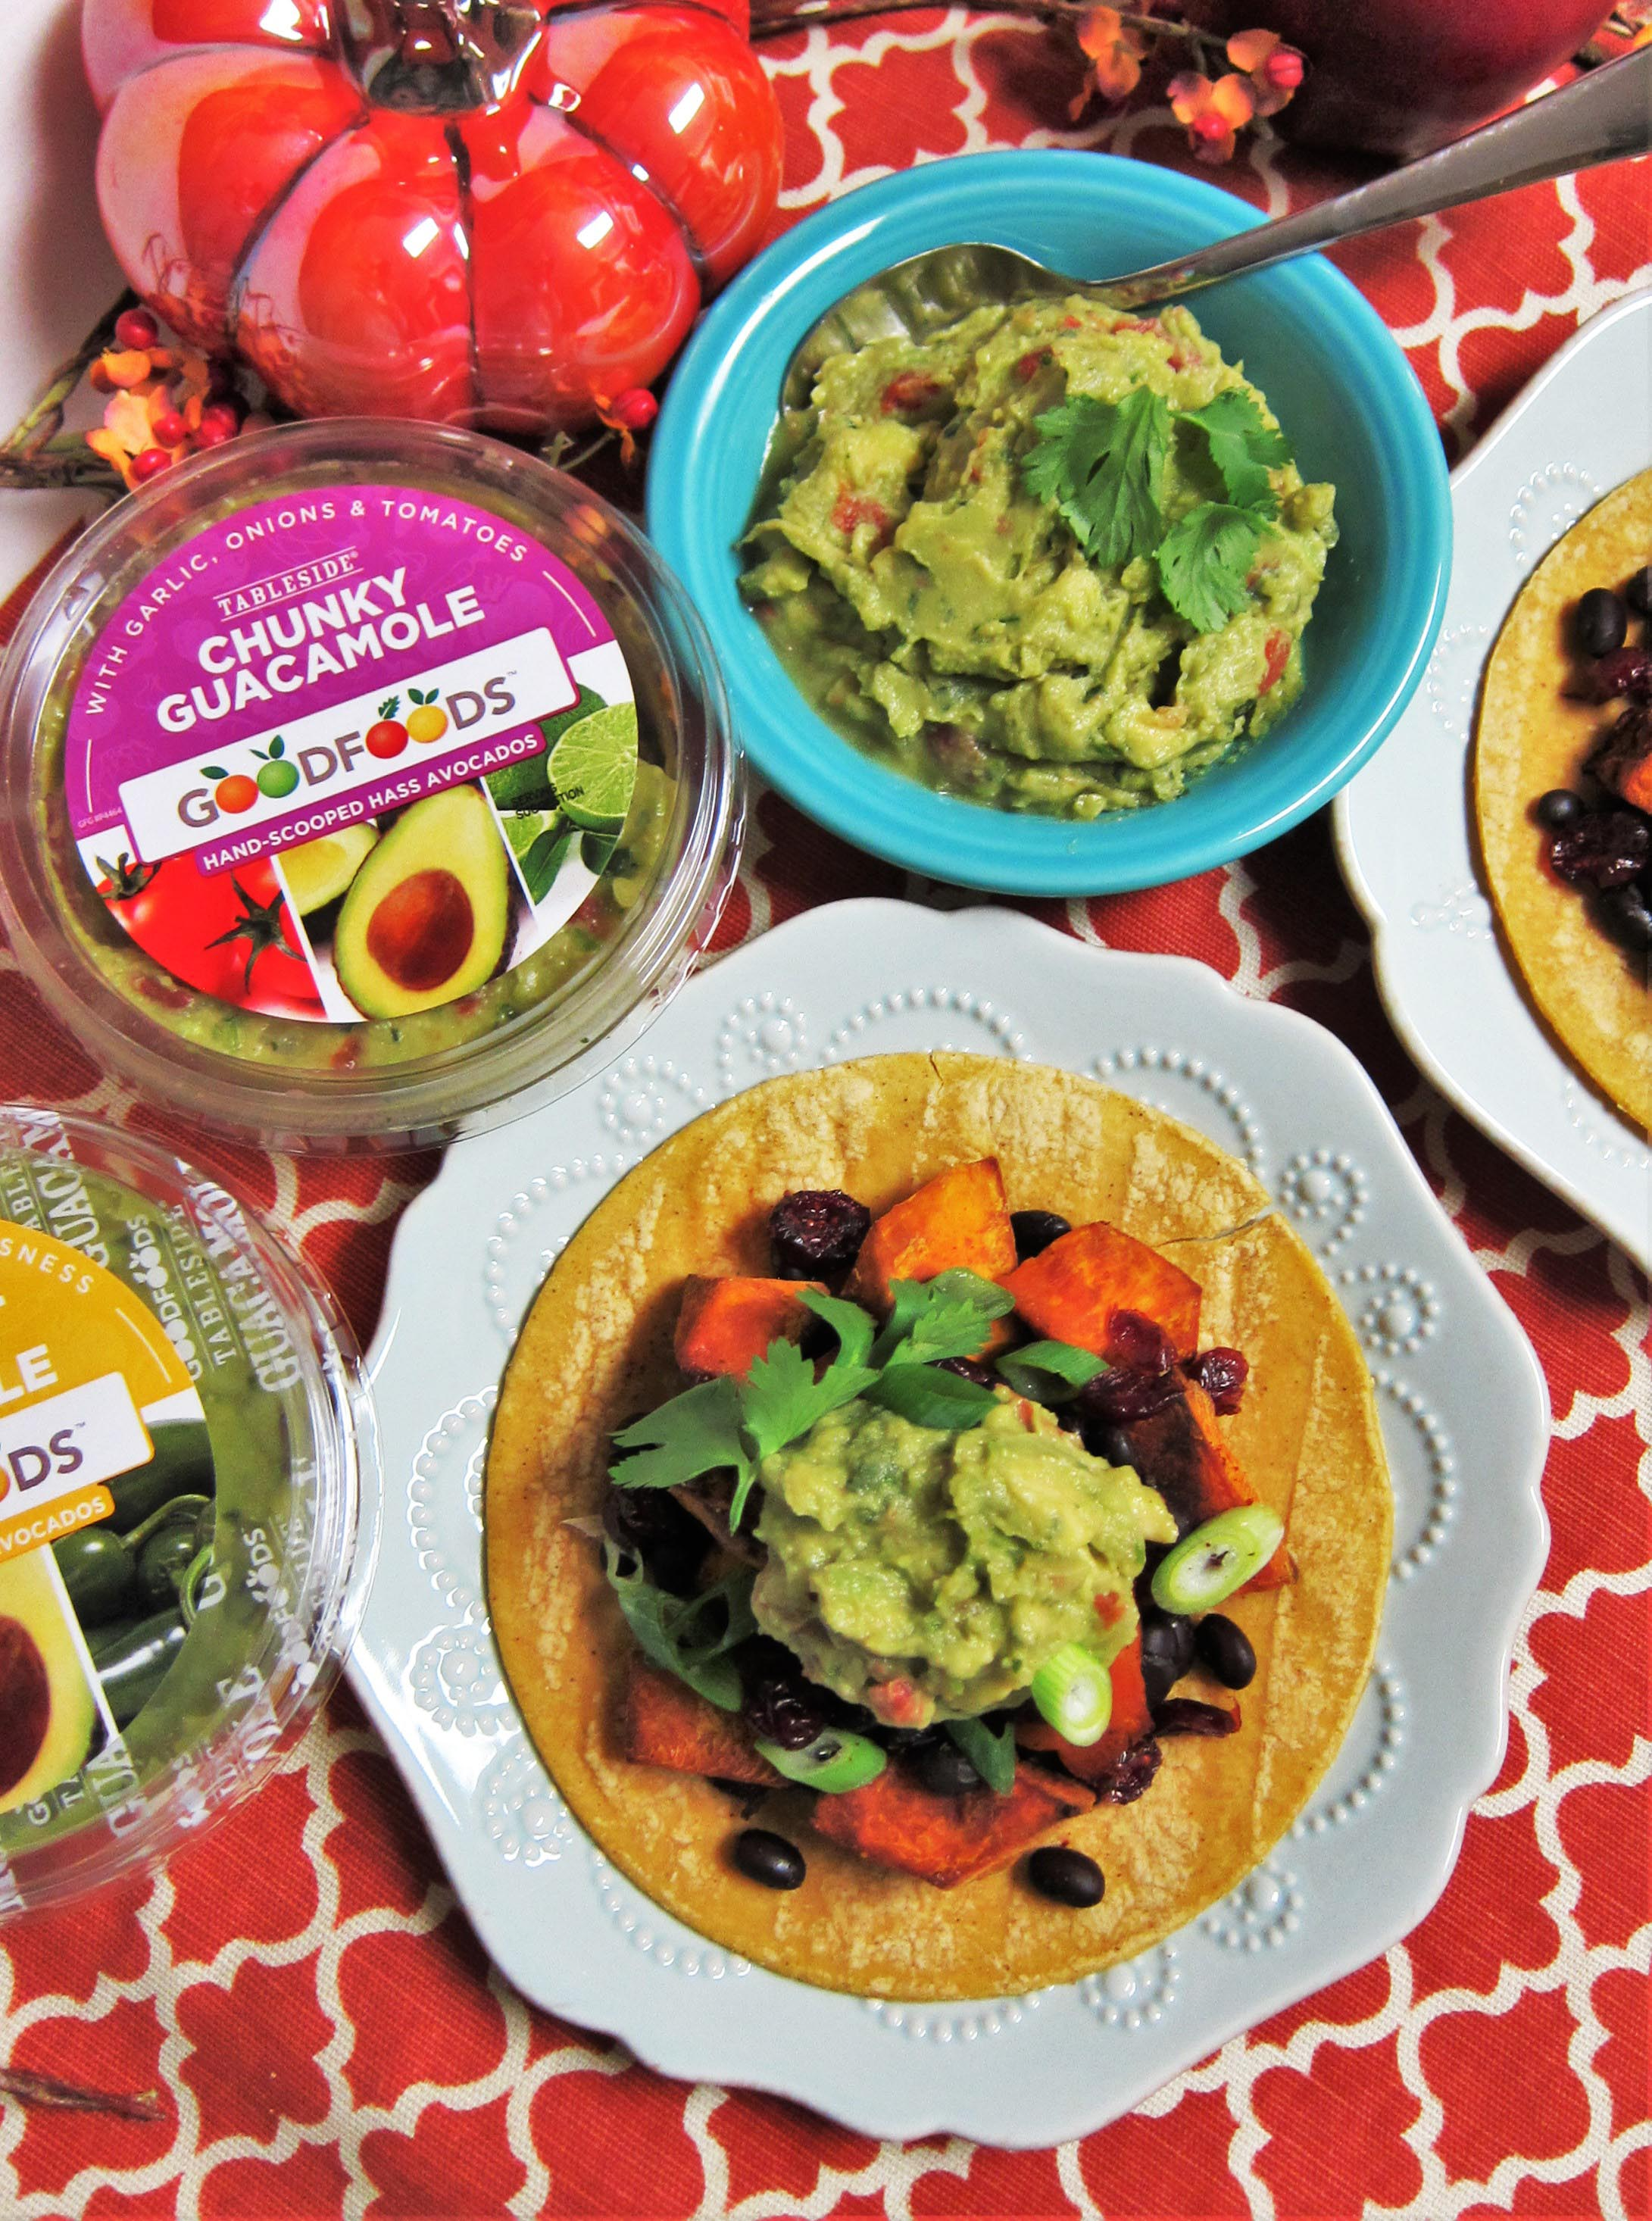 Vegan Roasted Squash Black Bean Tacos Recipe with GOODFOODS Guacamole